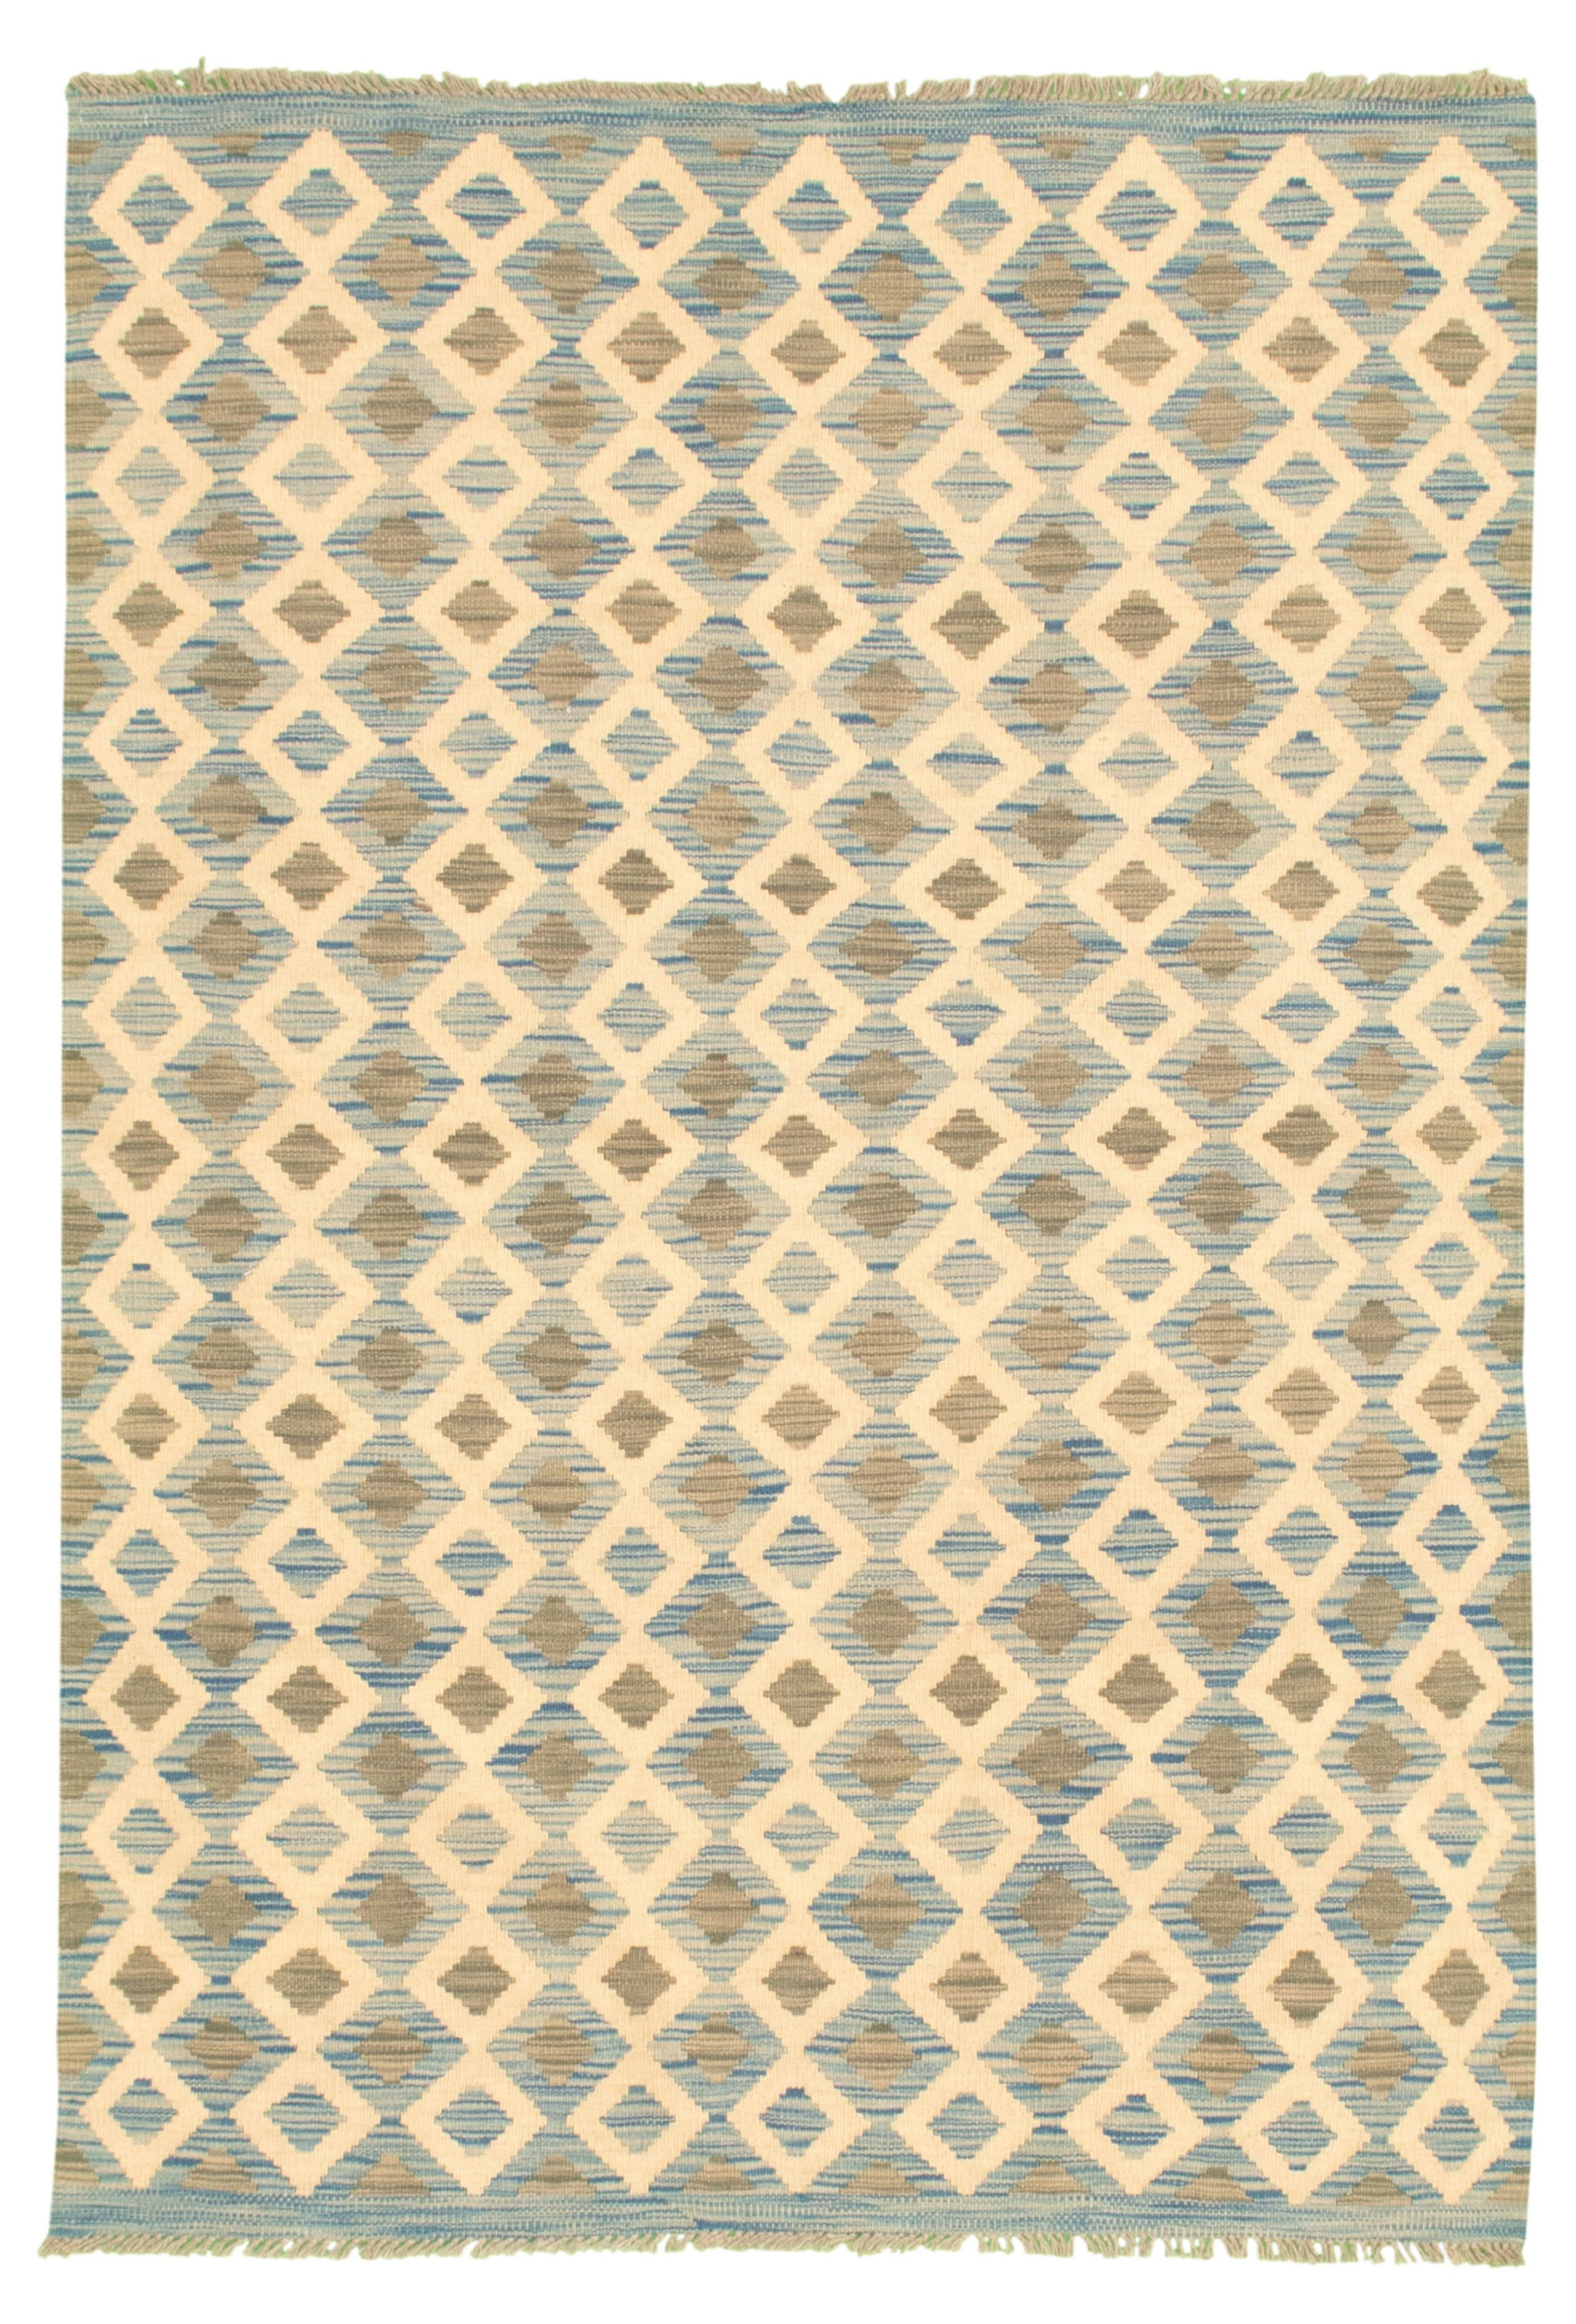 """Hand woven Bold and Colorful  Cream, Light Blue  Wool Kilim 4'2"""" x 6'1"""" Size: 4'2"""" x 6'1"""""""